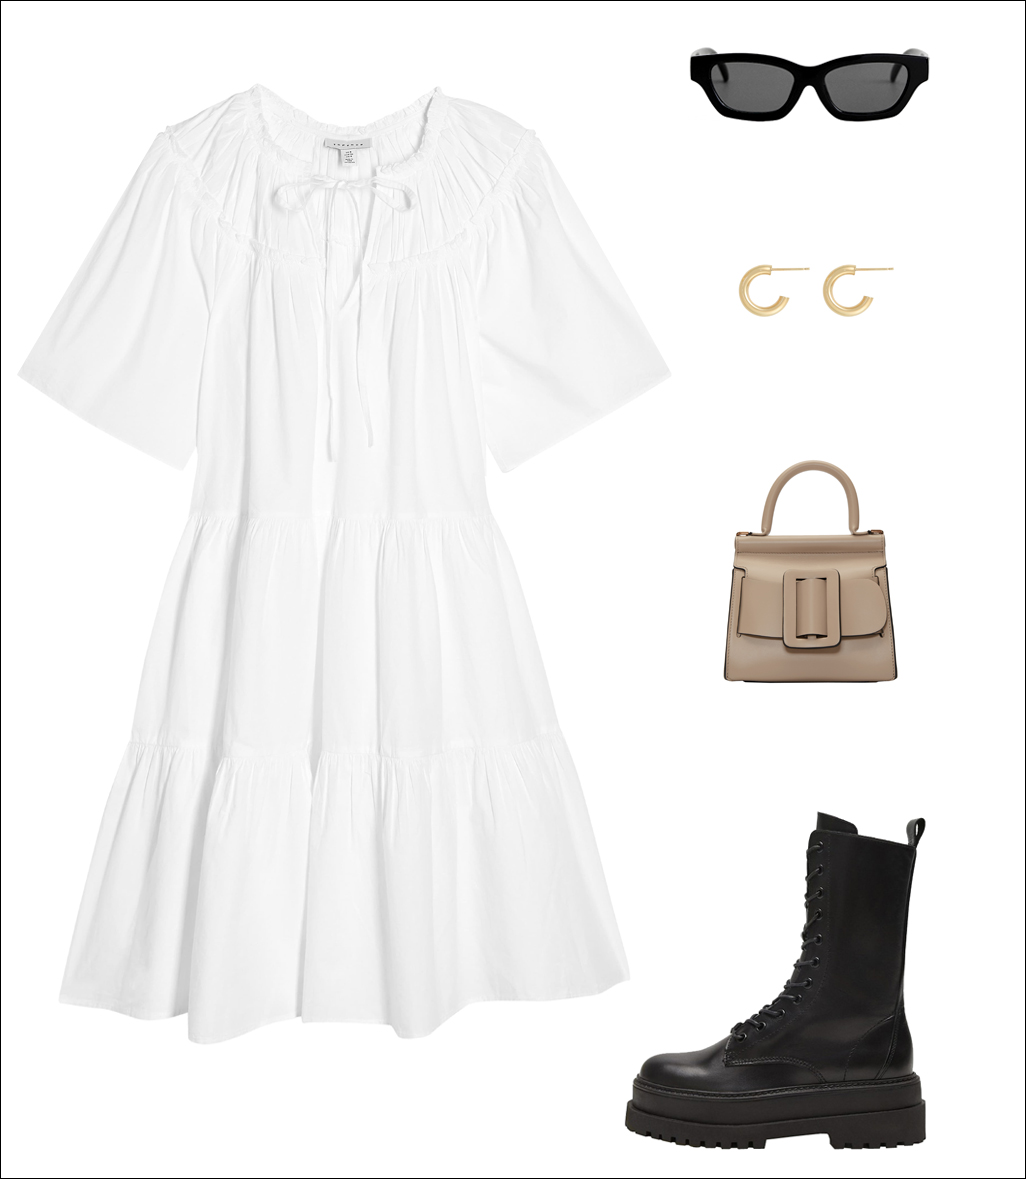 How to Wear a White Dress for Fall — Fashion-forward oversized white dress, black sunglasses, gold hoop earrings, Boyy karl mini bag, black lace-up combat boots